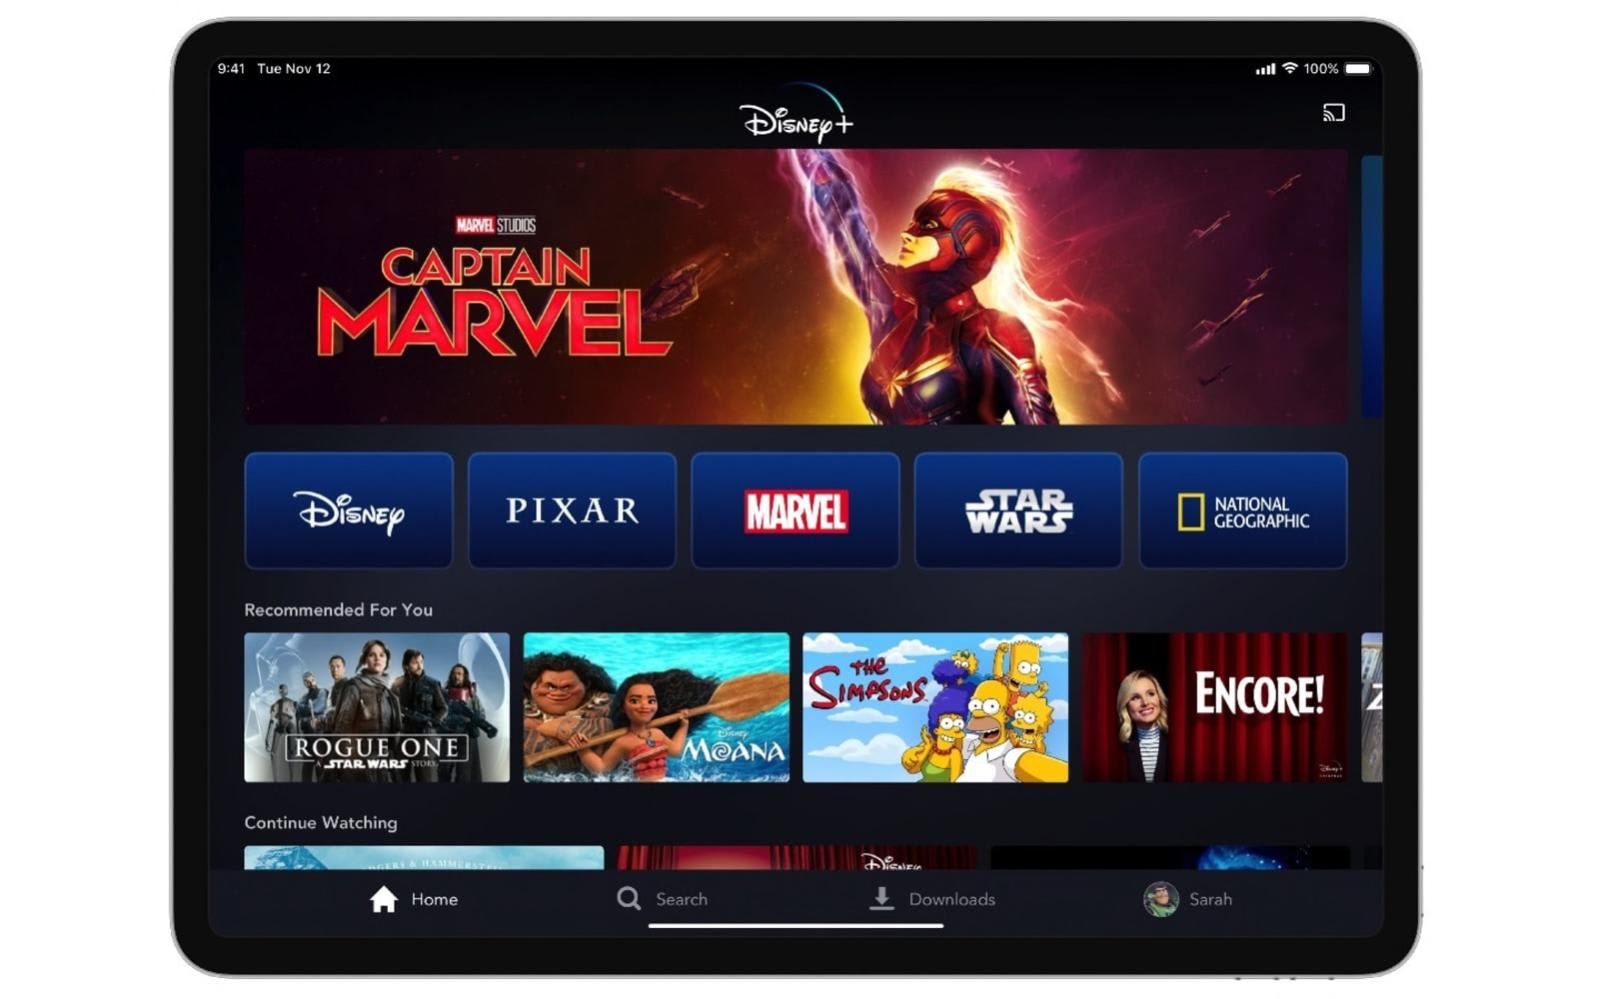 Get Disney+ For $4 Per Month, If You Buy Three Years